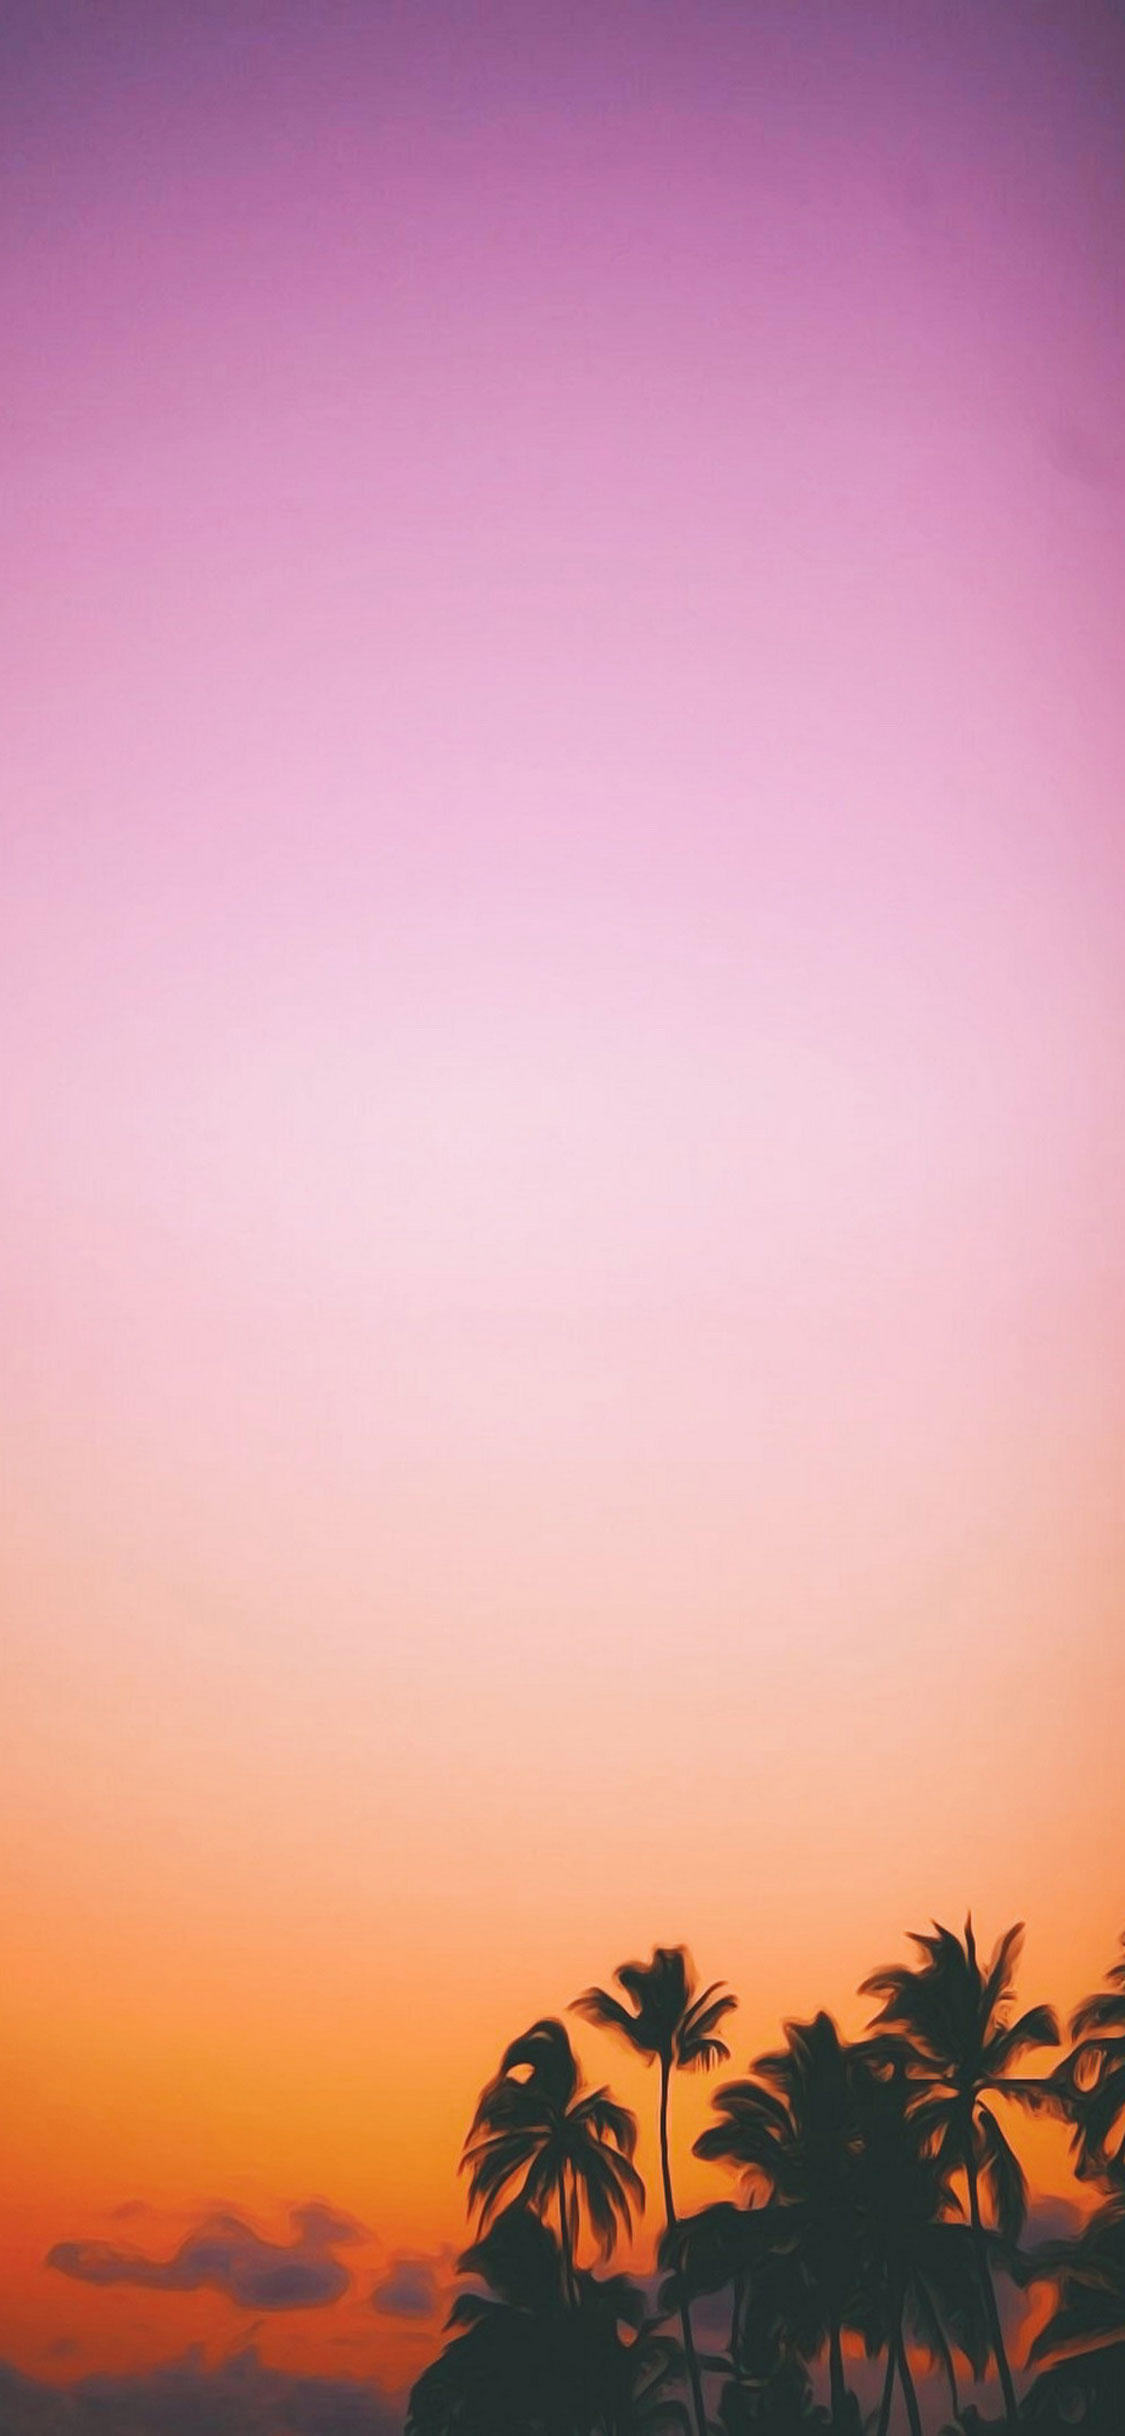 30 New Cool iPhone X Wallpapers Backgrounds to freshen 1125x2436